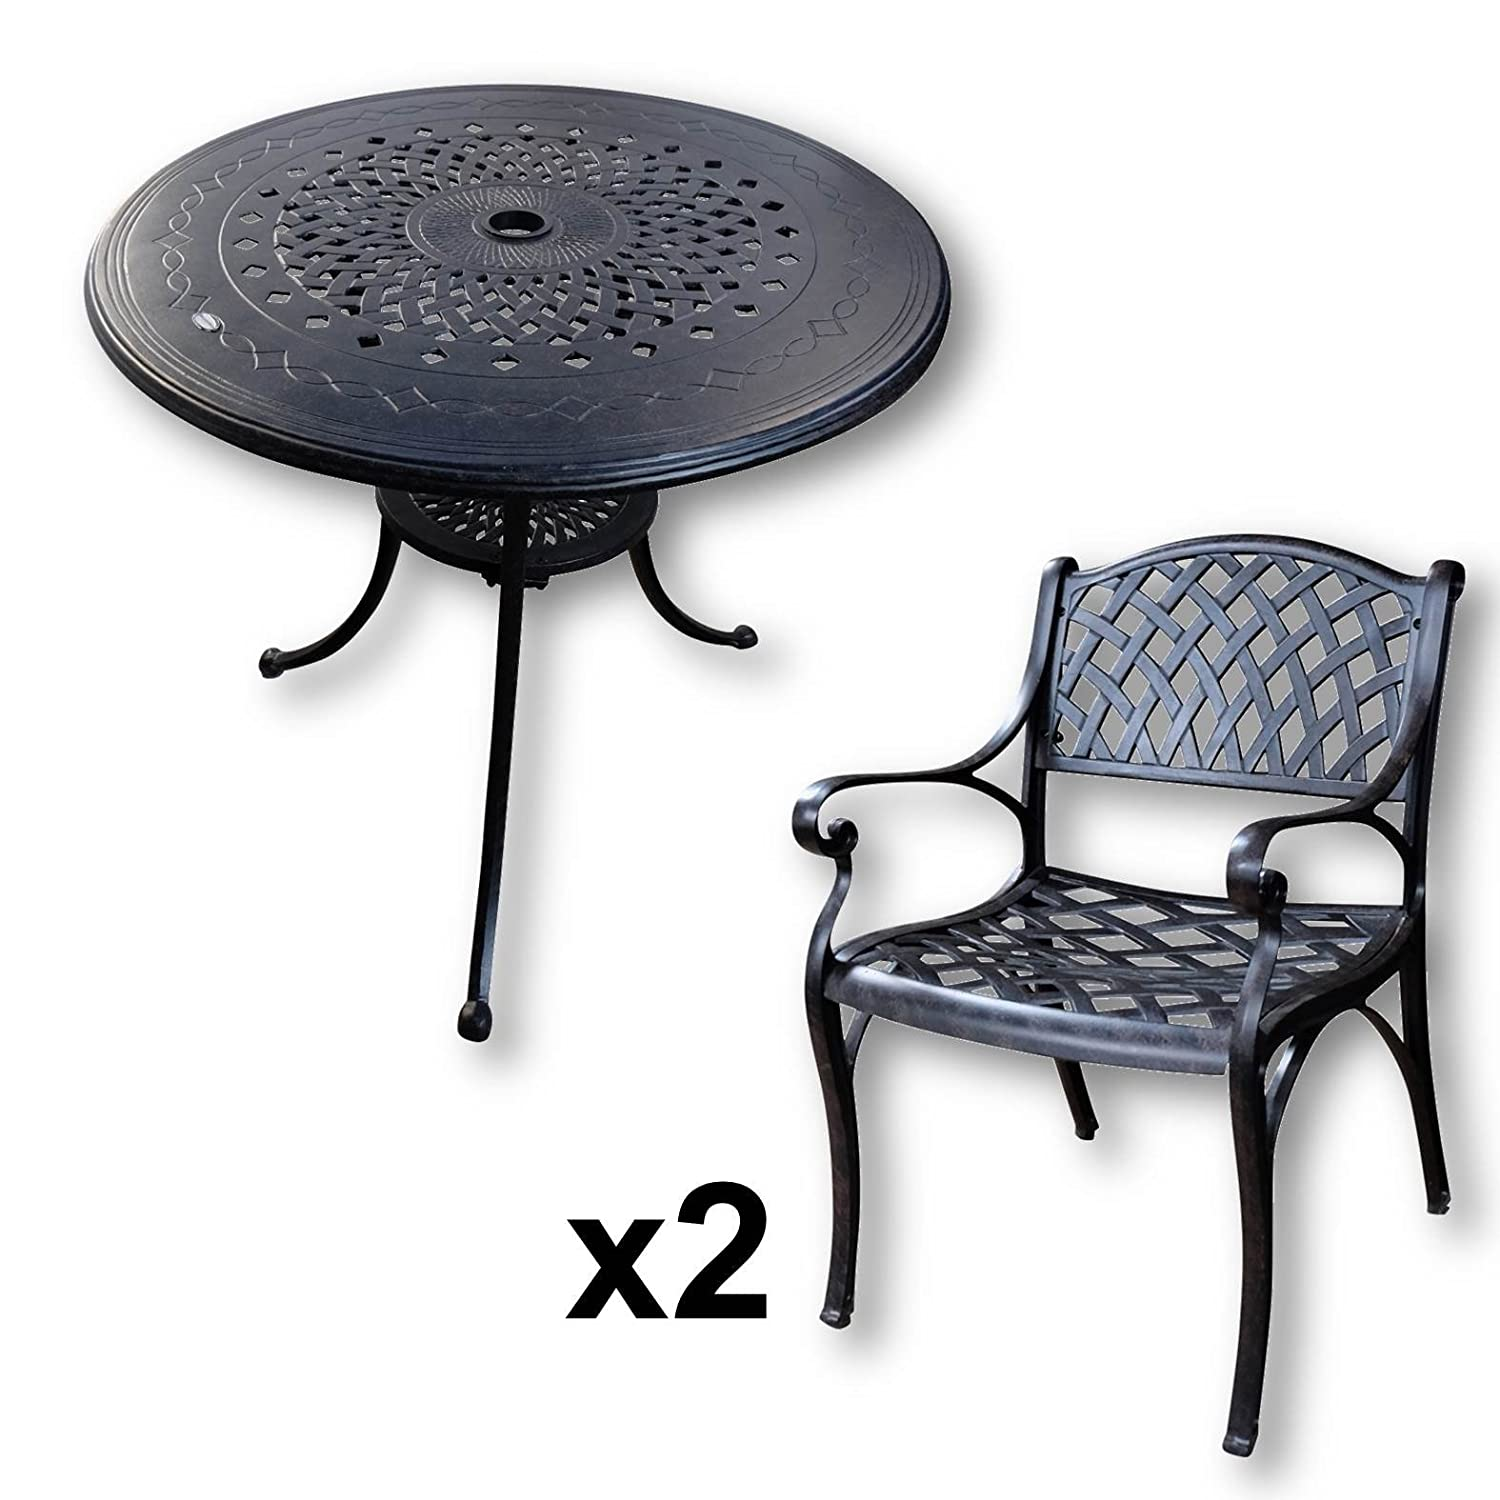 lazy susan anna 80 cm runder gartentisch mit 2 st hlen gartenm bel set aus metall antik. Black Bedroom Furniture Sets. Home Design Ideas